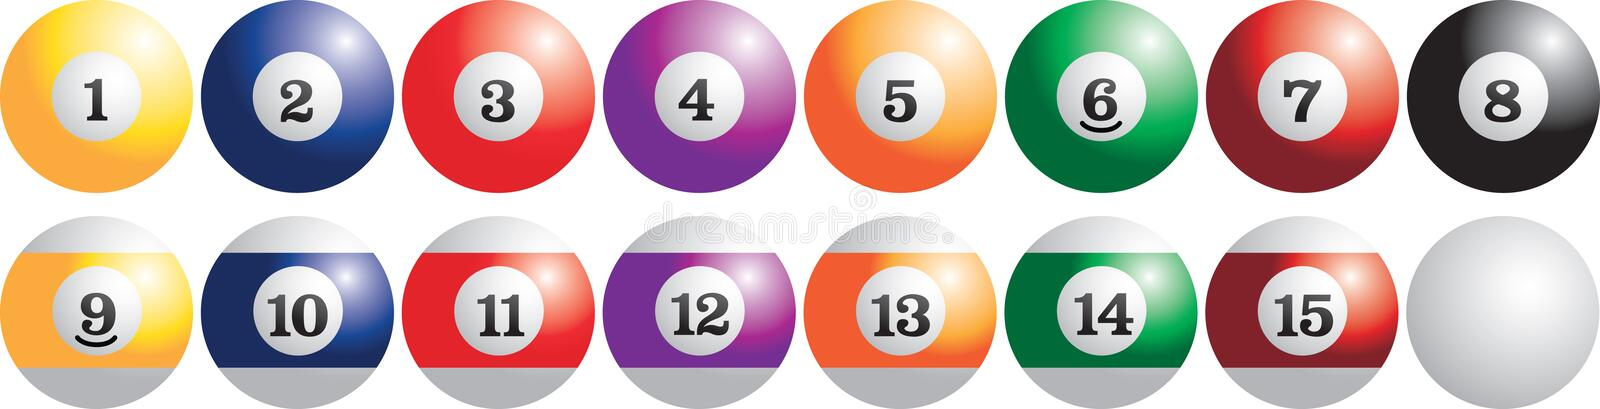 Set of billiard balls. Full set of billiard balls royalty free illustration